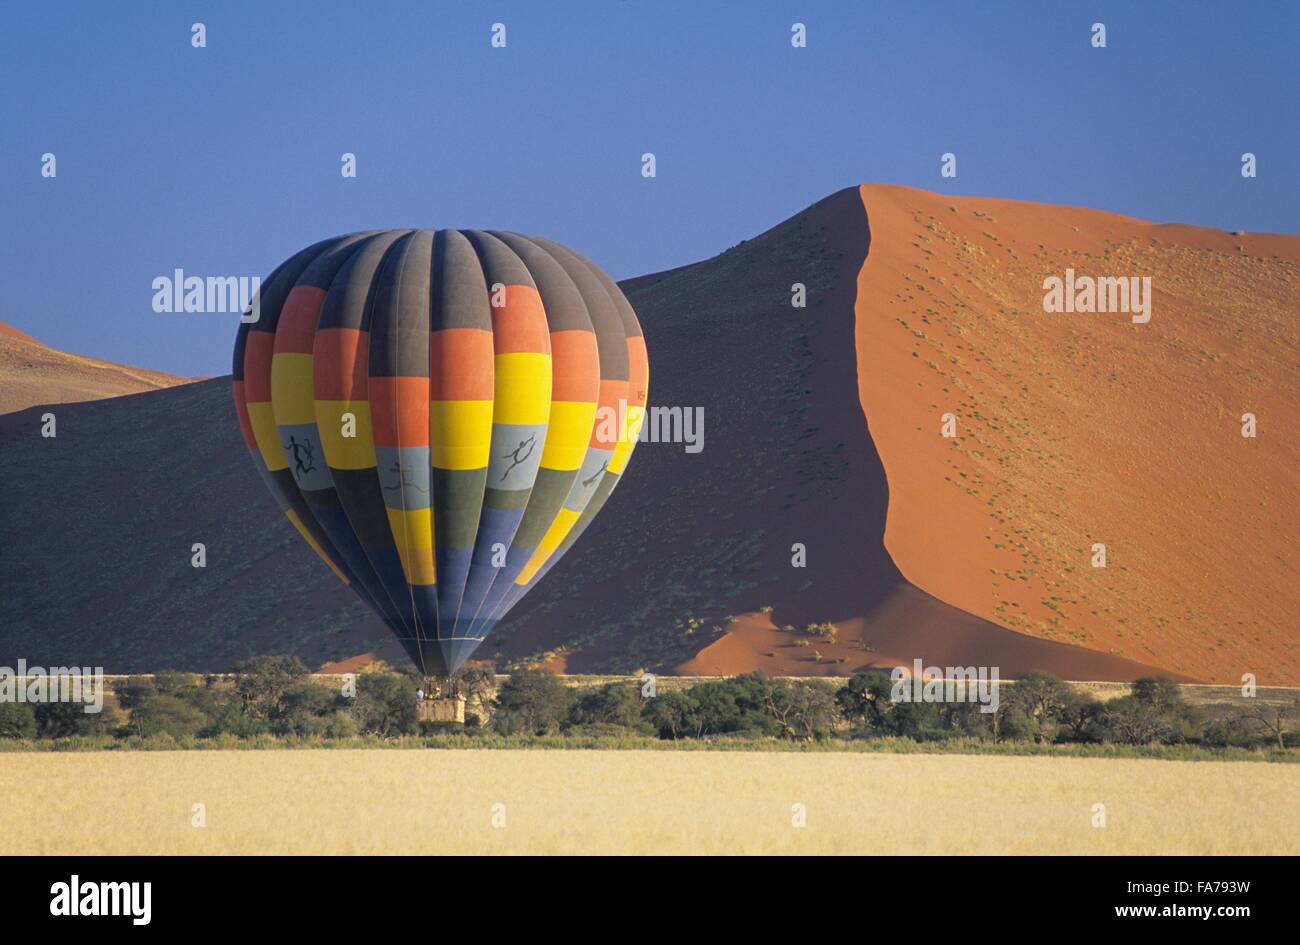 Namibia, Namib-Naukluft National park, hot-air balloon flying over Namib desert  // Namibie, Namib-Naukluft National - Stock Image